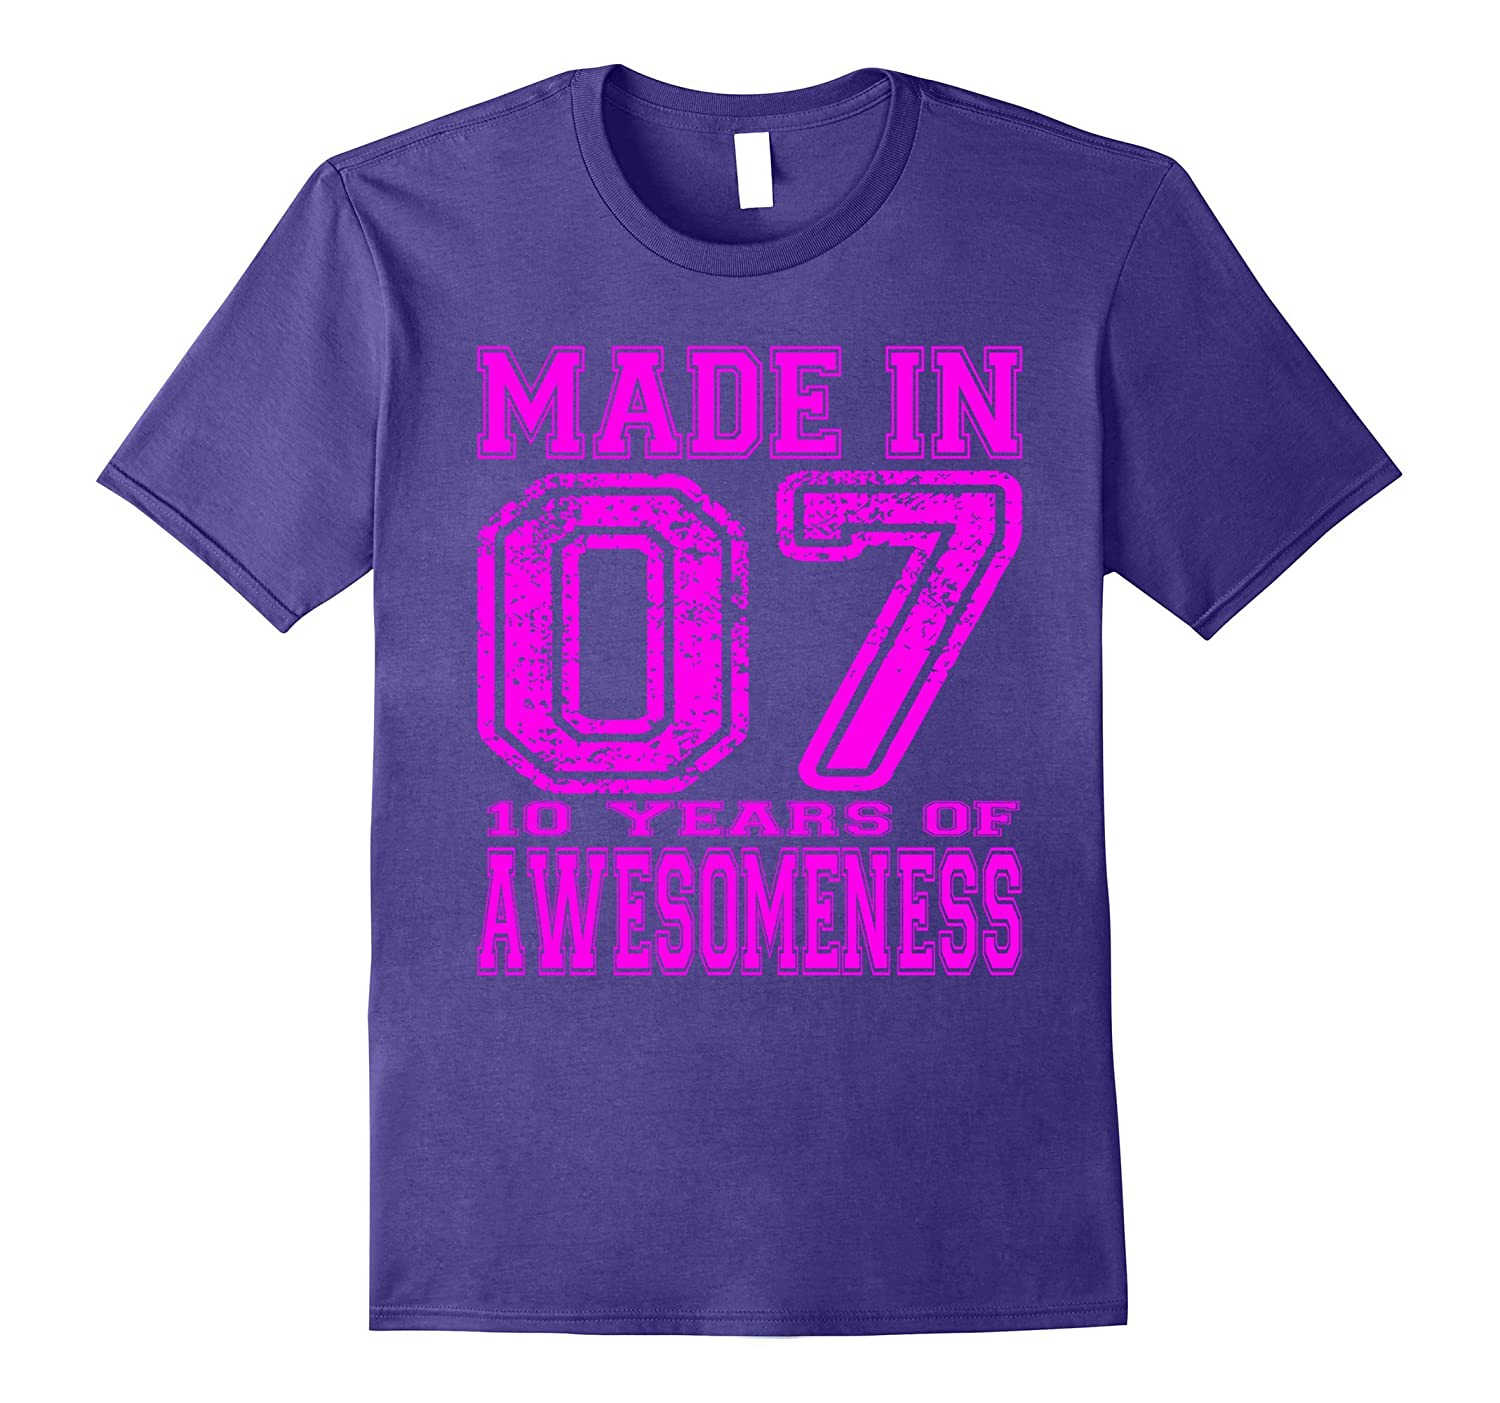 10th Birthday Gift Tshirt Made In 07 10 Years of Awesomeness-PL